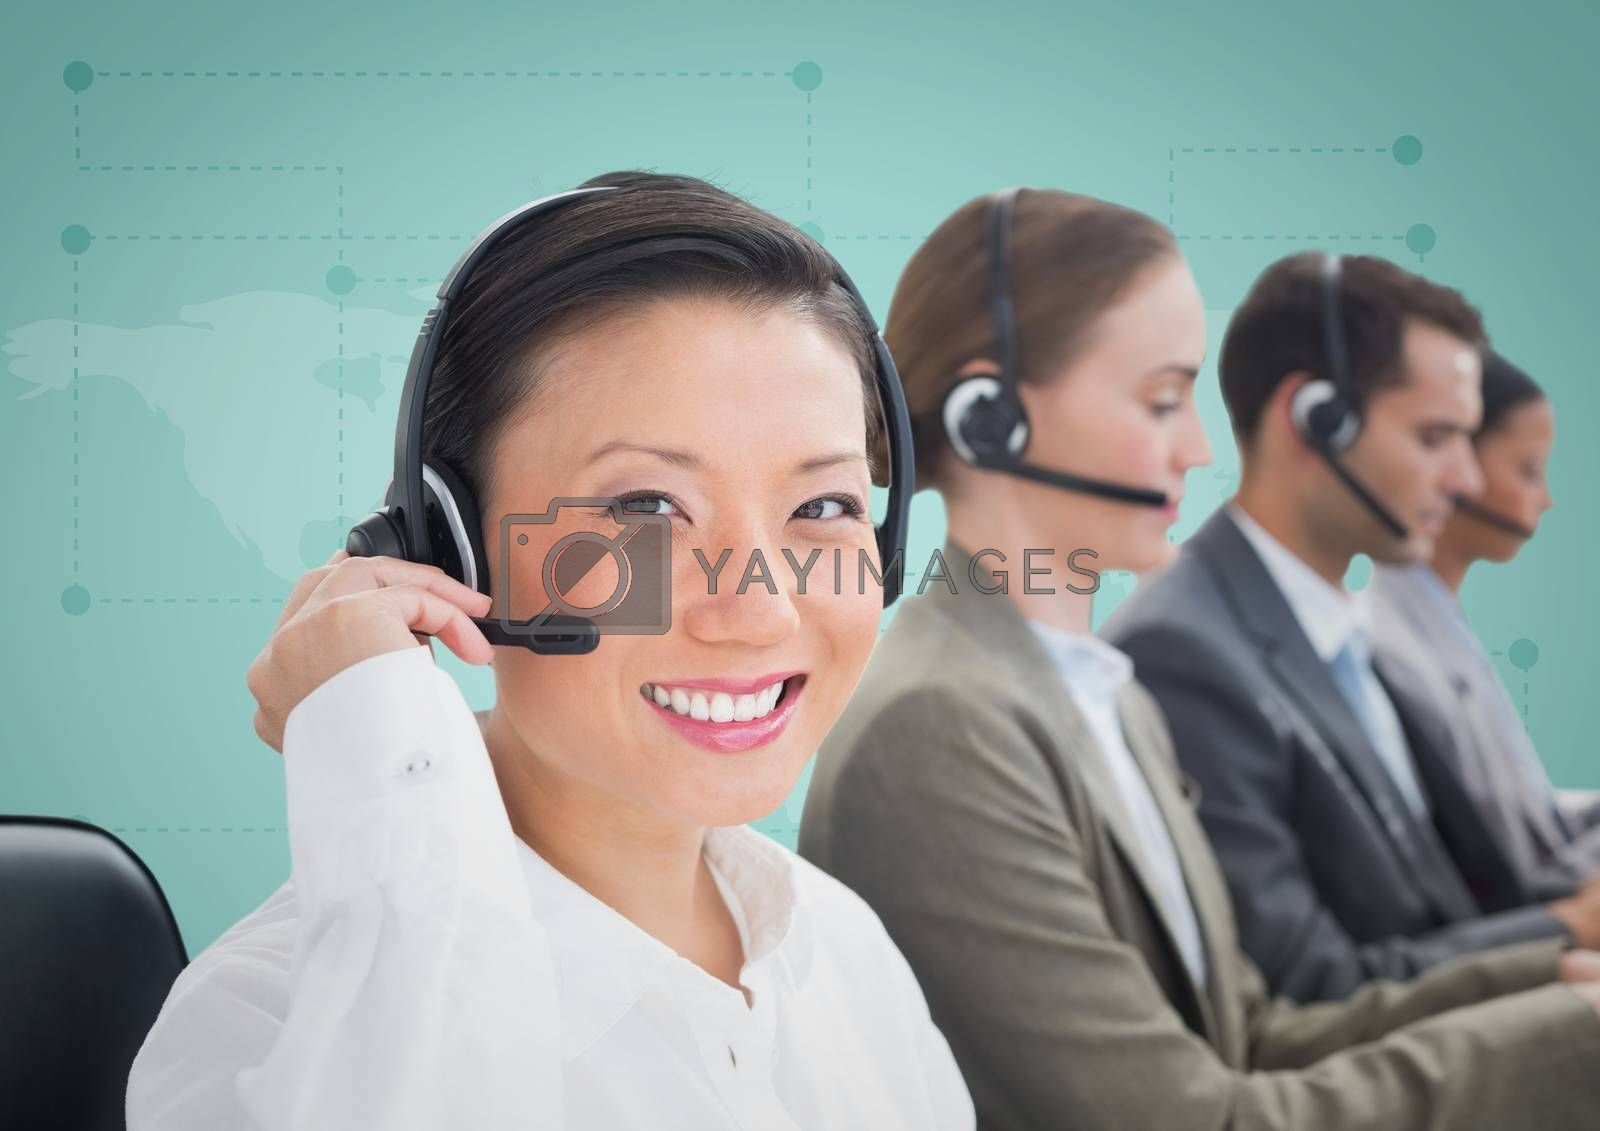 Digital composite of Travel agents with headsets against green map